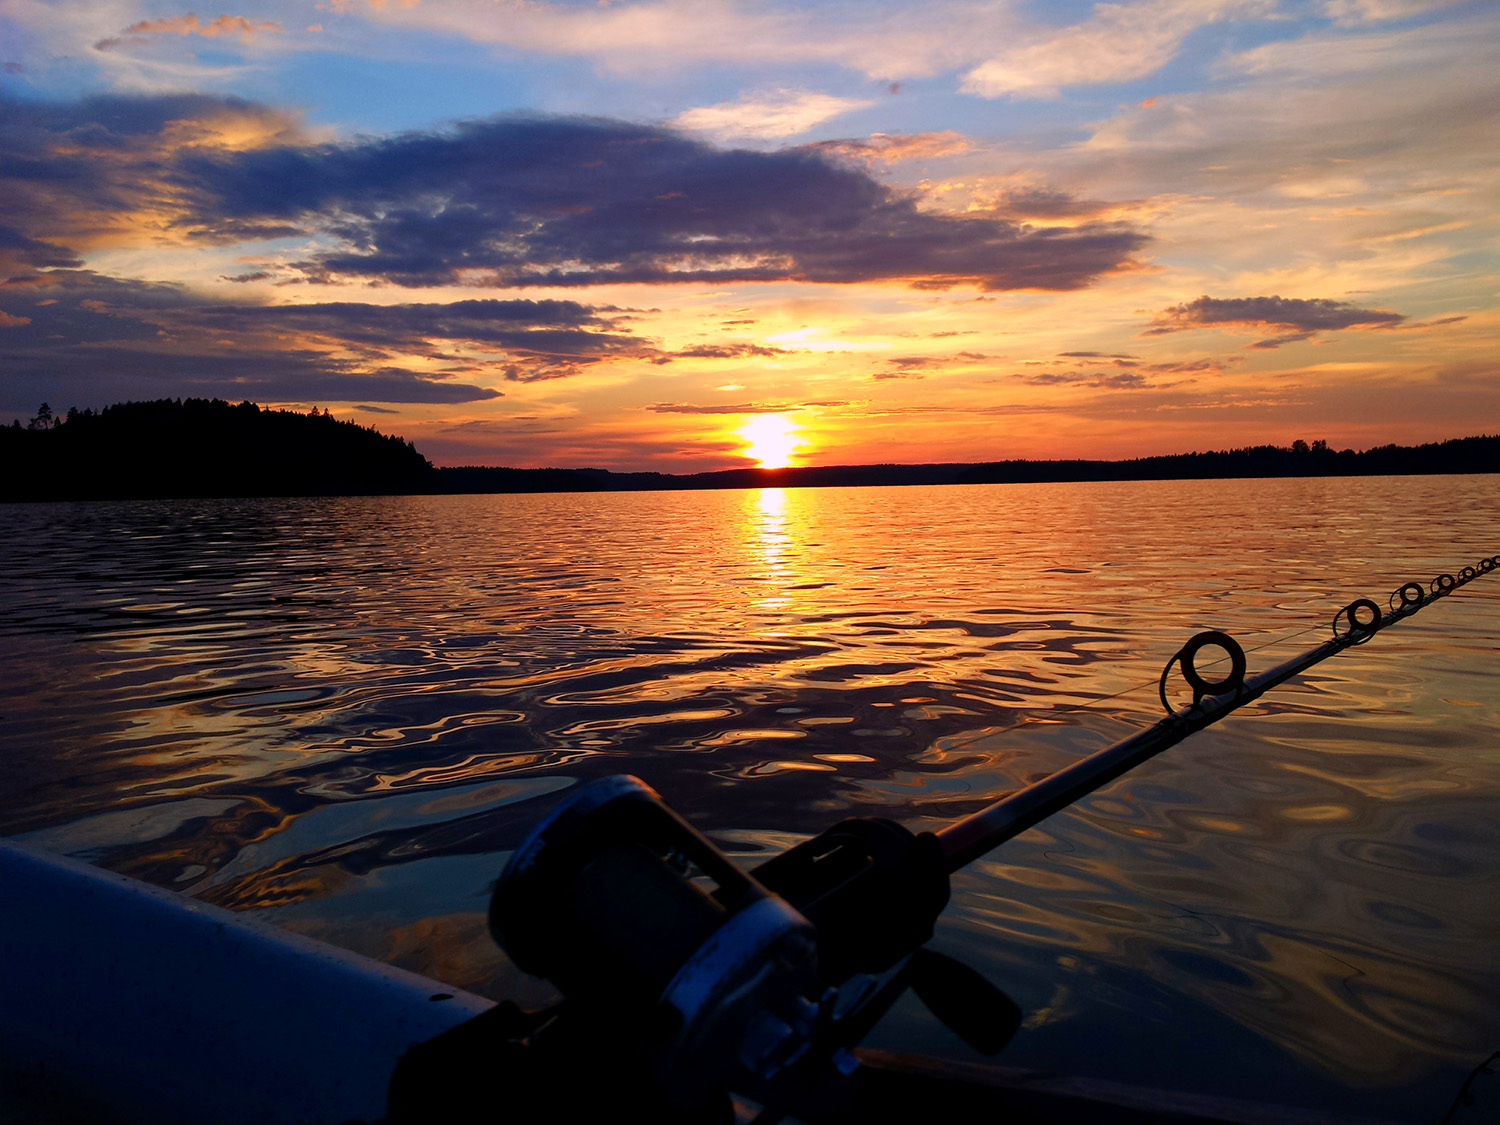 Fishing at sunset on the lake in Western Finland